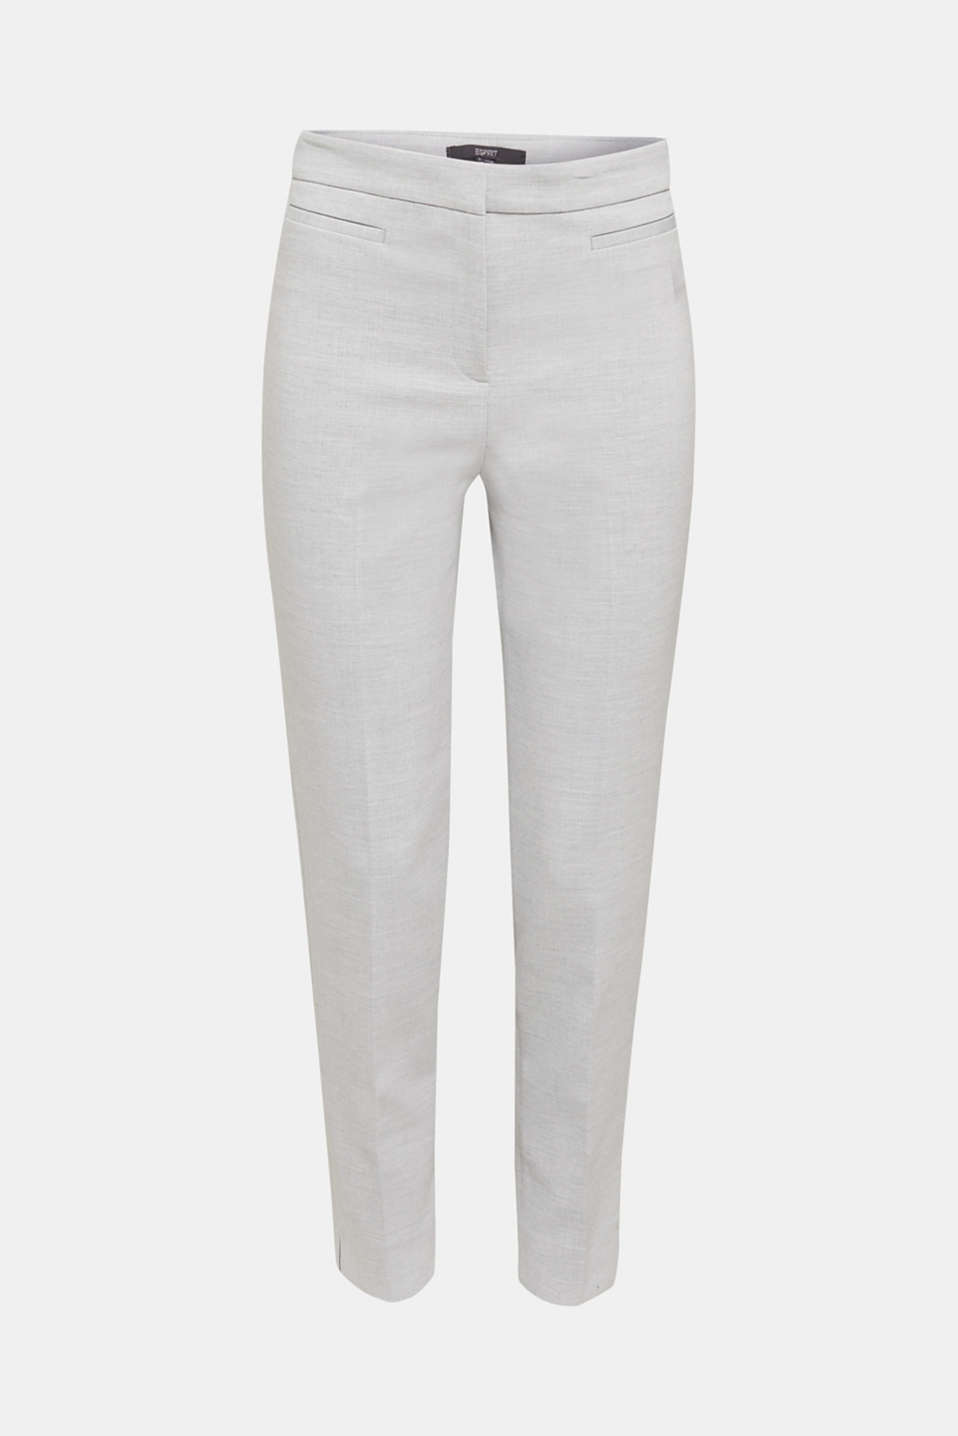 JERSEY mix + match trousers, LIGHT GREY 5, detail image number 6